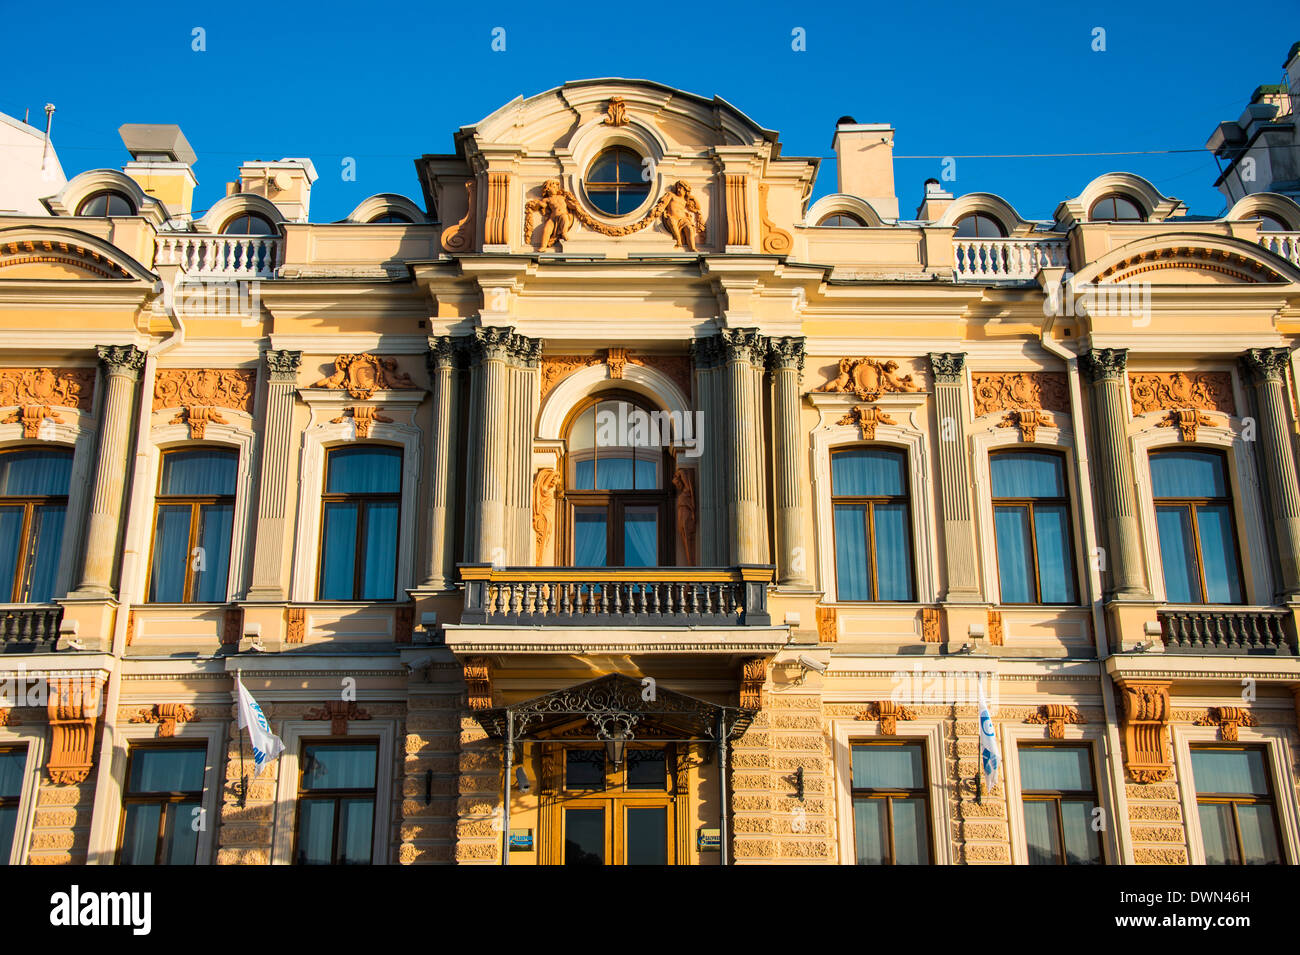 Neoclassical Architecture Stock Photos & Neoclassical Architecture ...